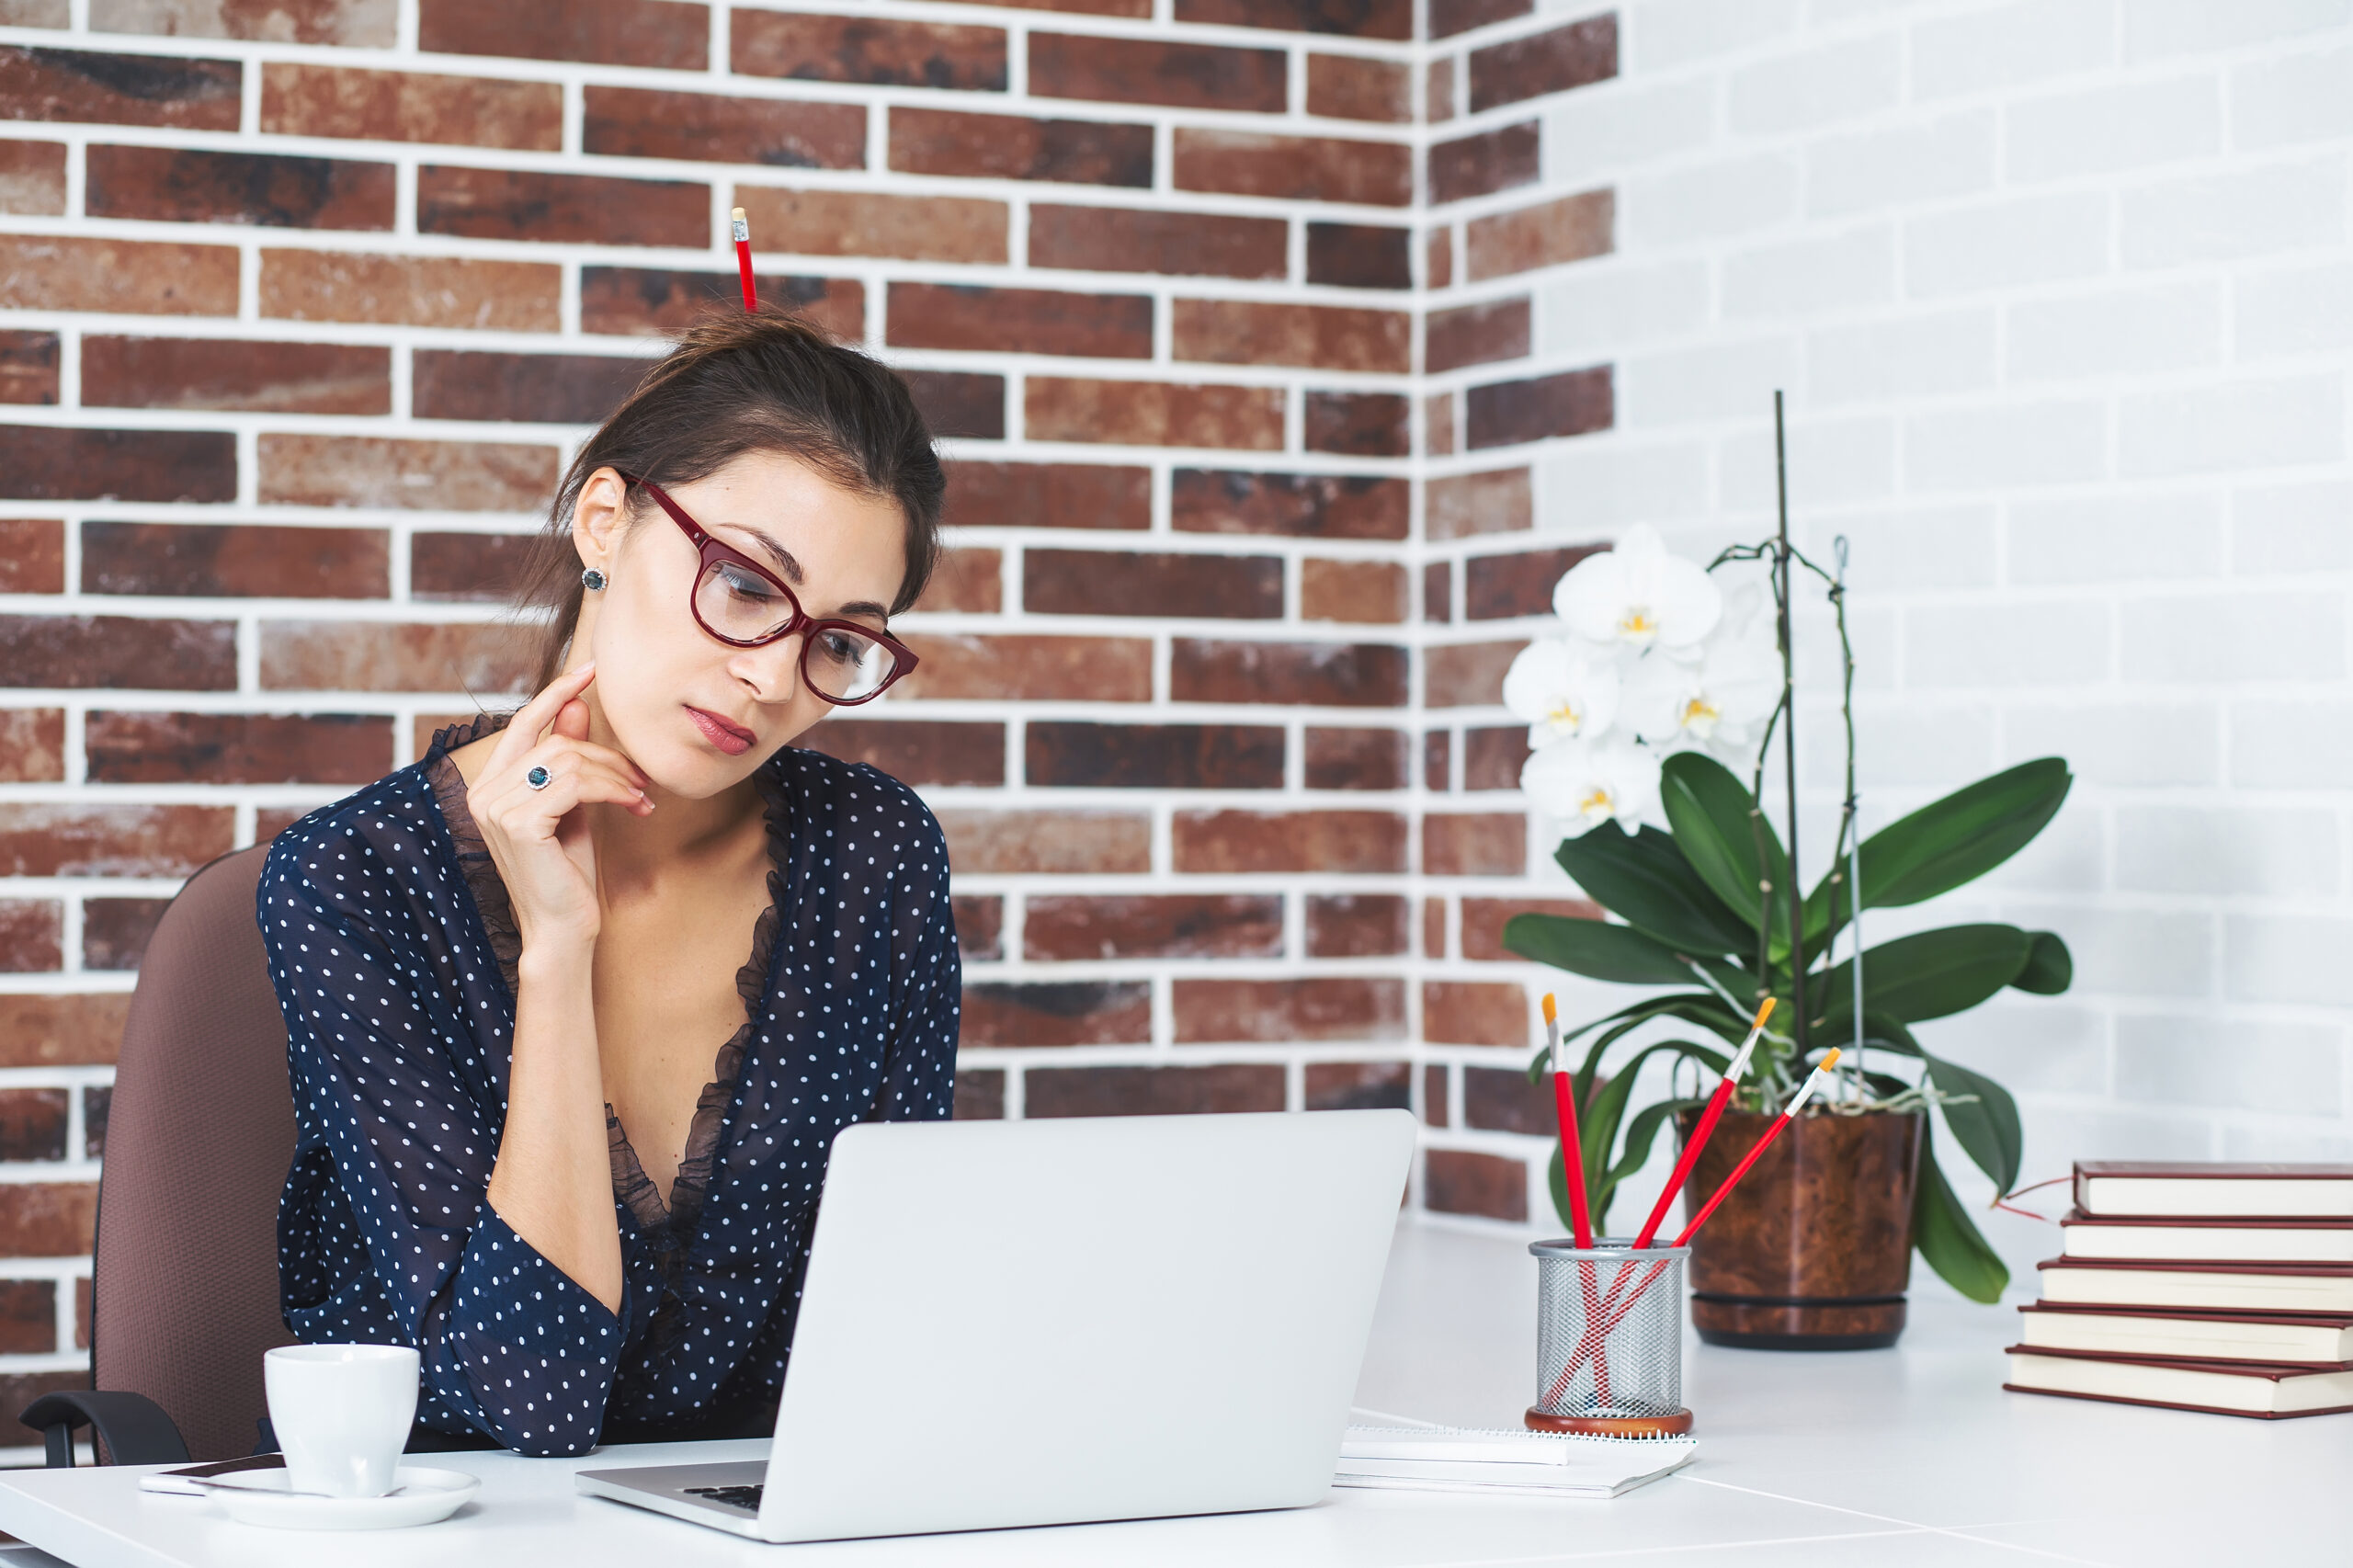 Business woman in the office at the desk with laptop